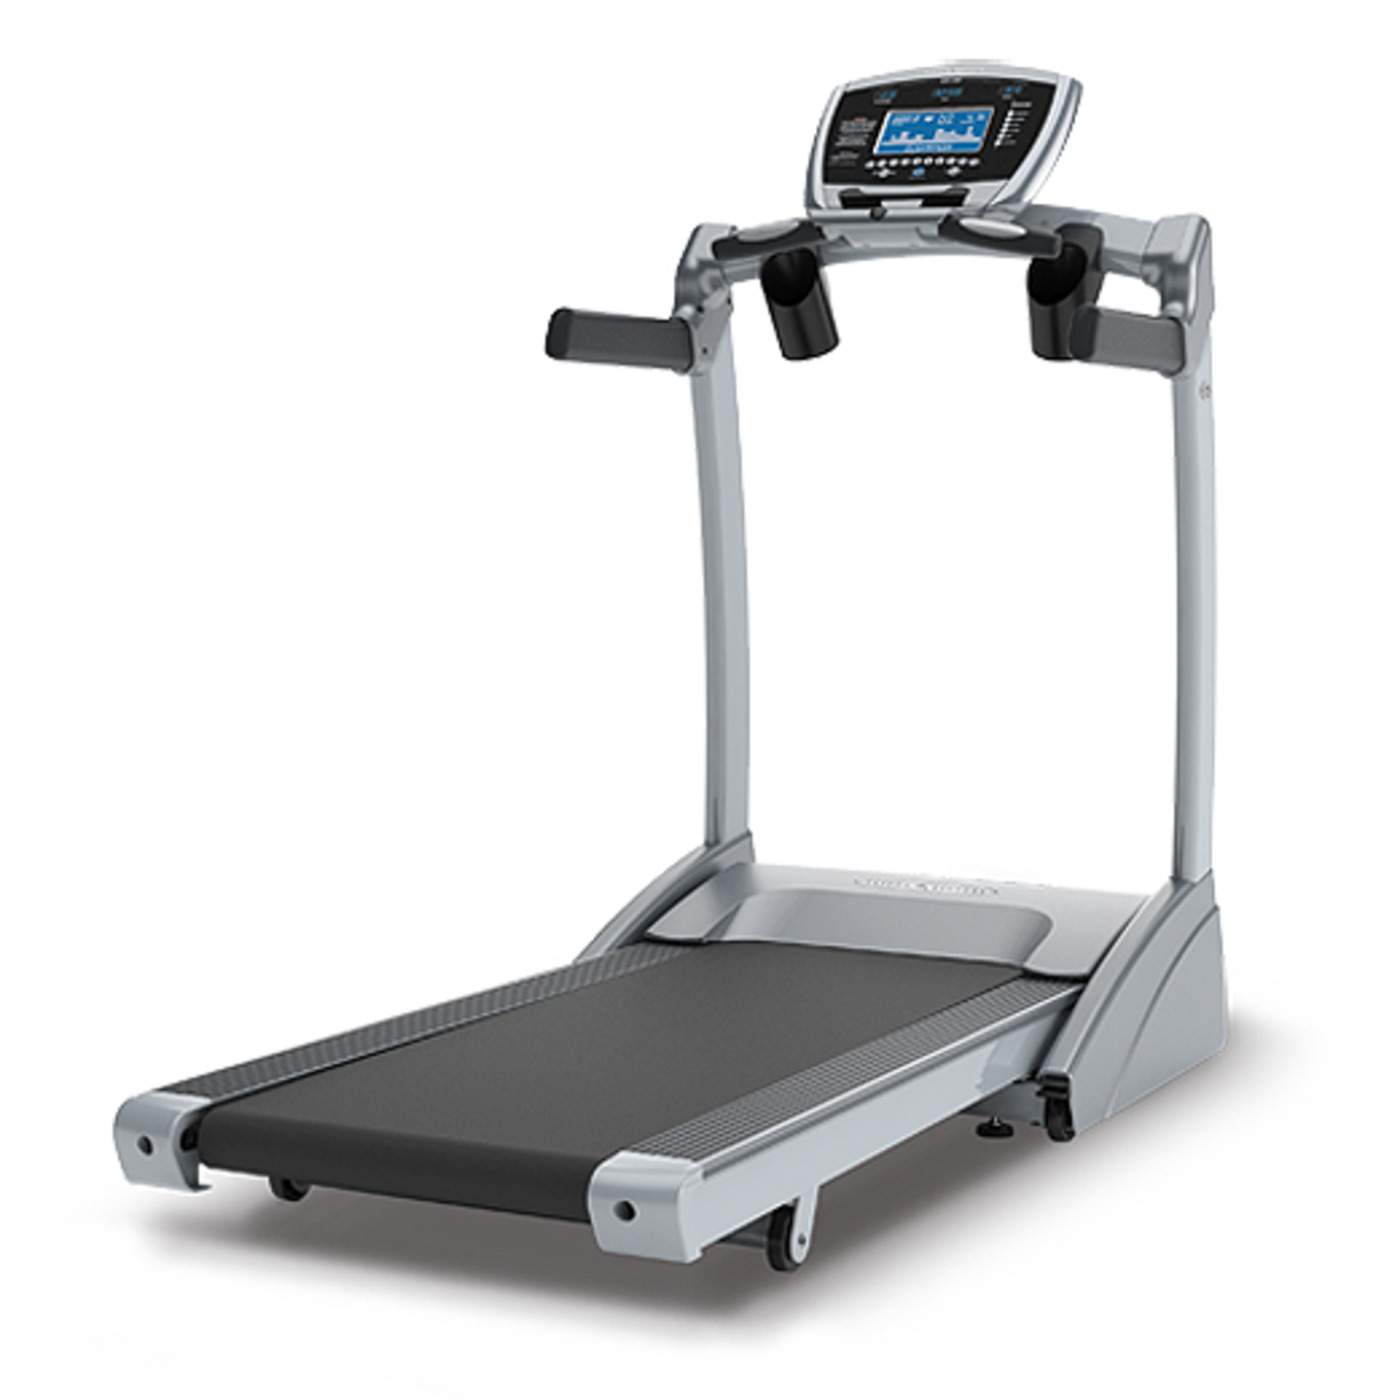 T9550 Treadmill (with New Deluxe